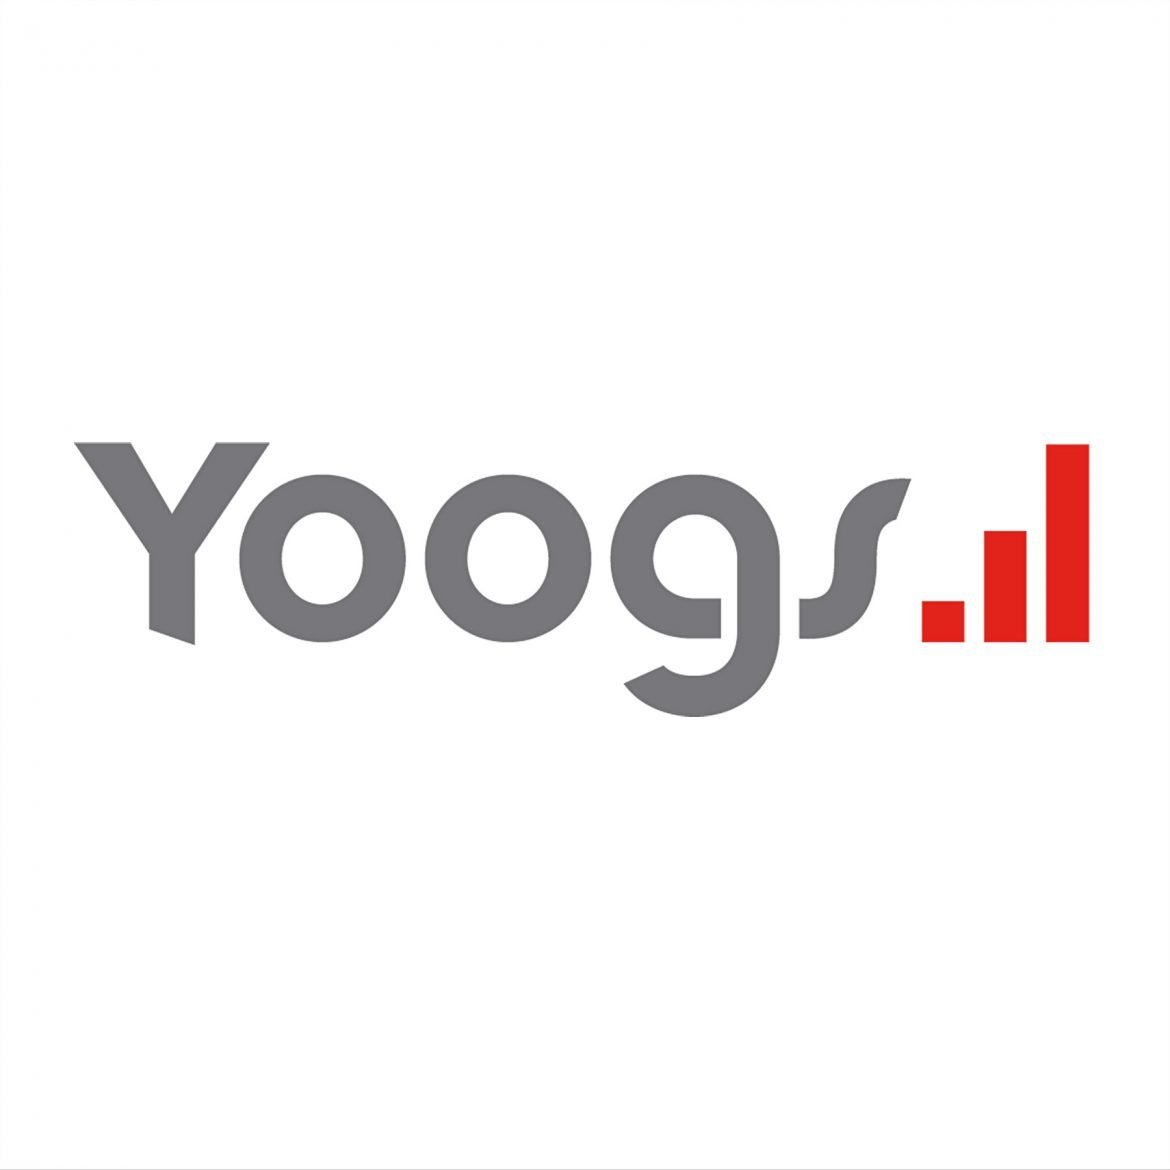 Yoogs logo